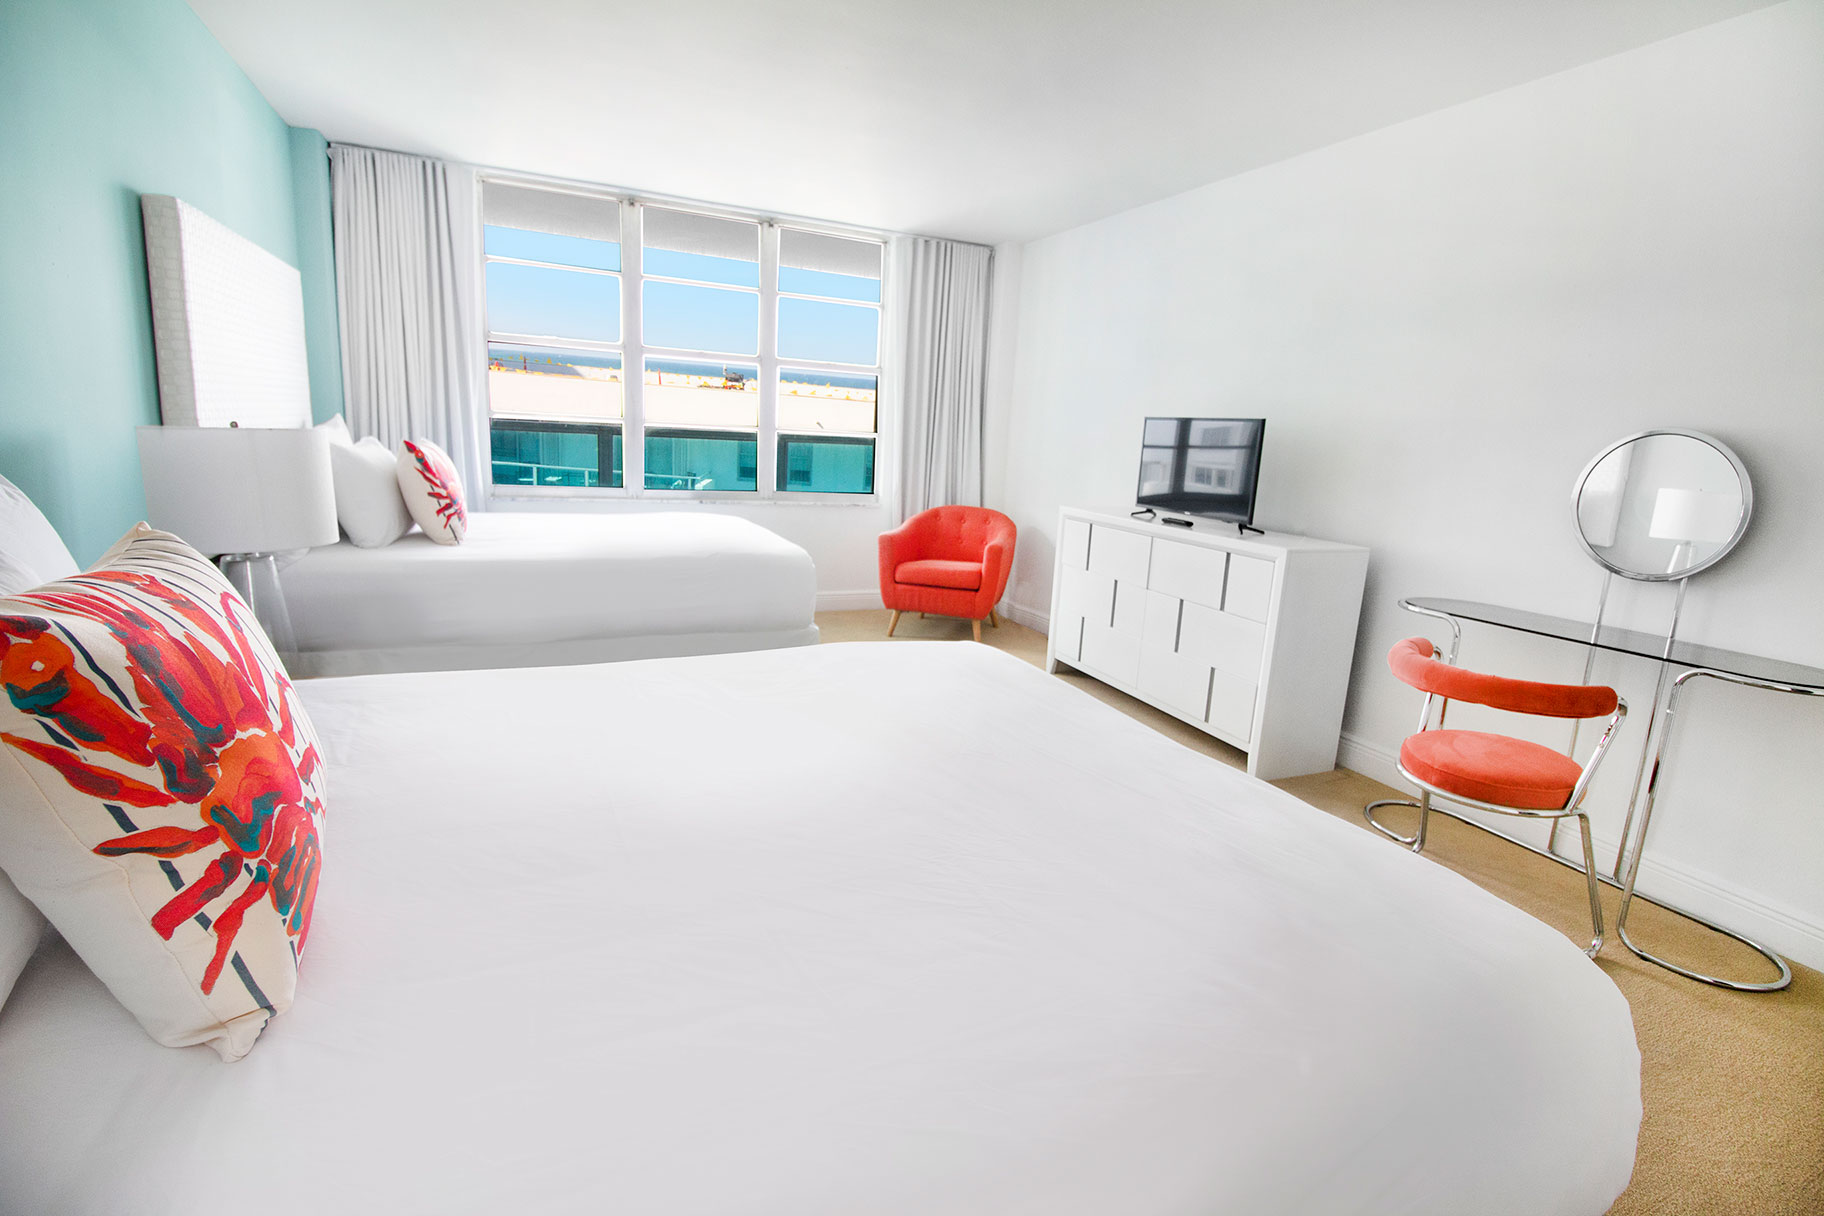 Bedroom of a Deluxe 1 Bedroom Apartment at Seacoast Suites